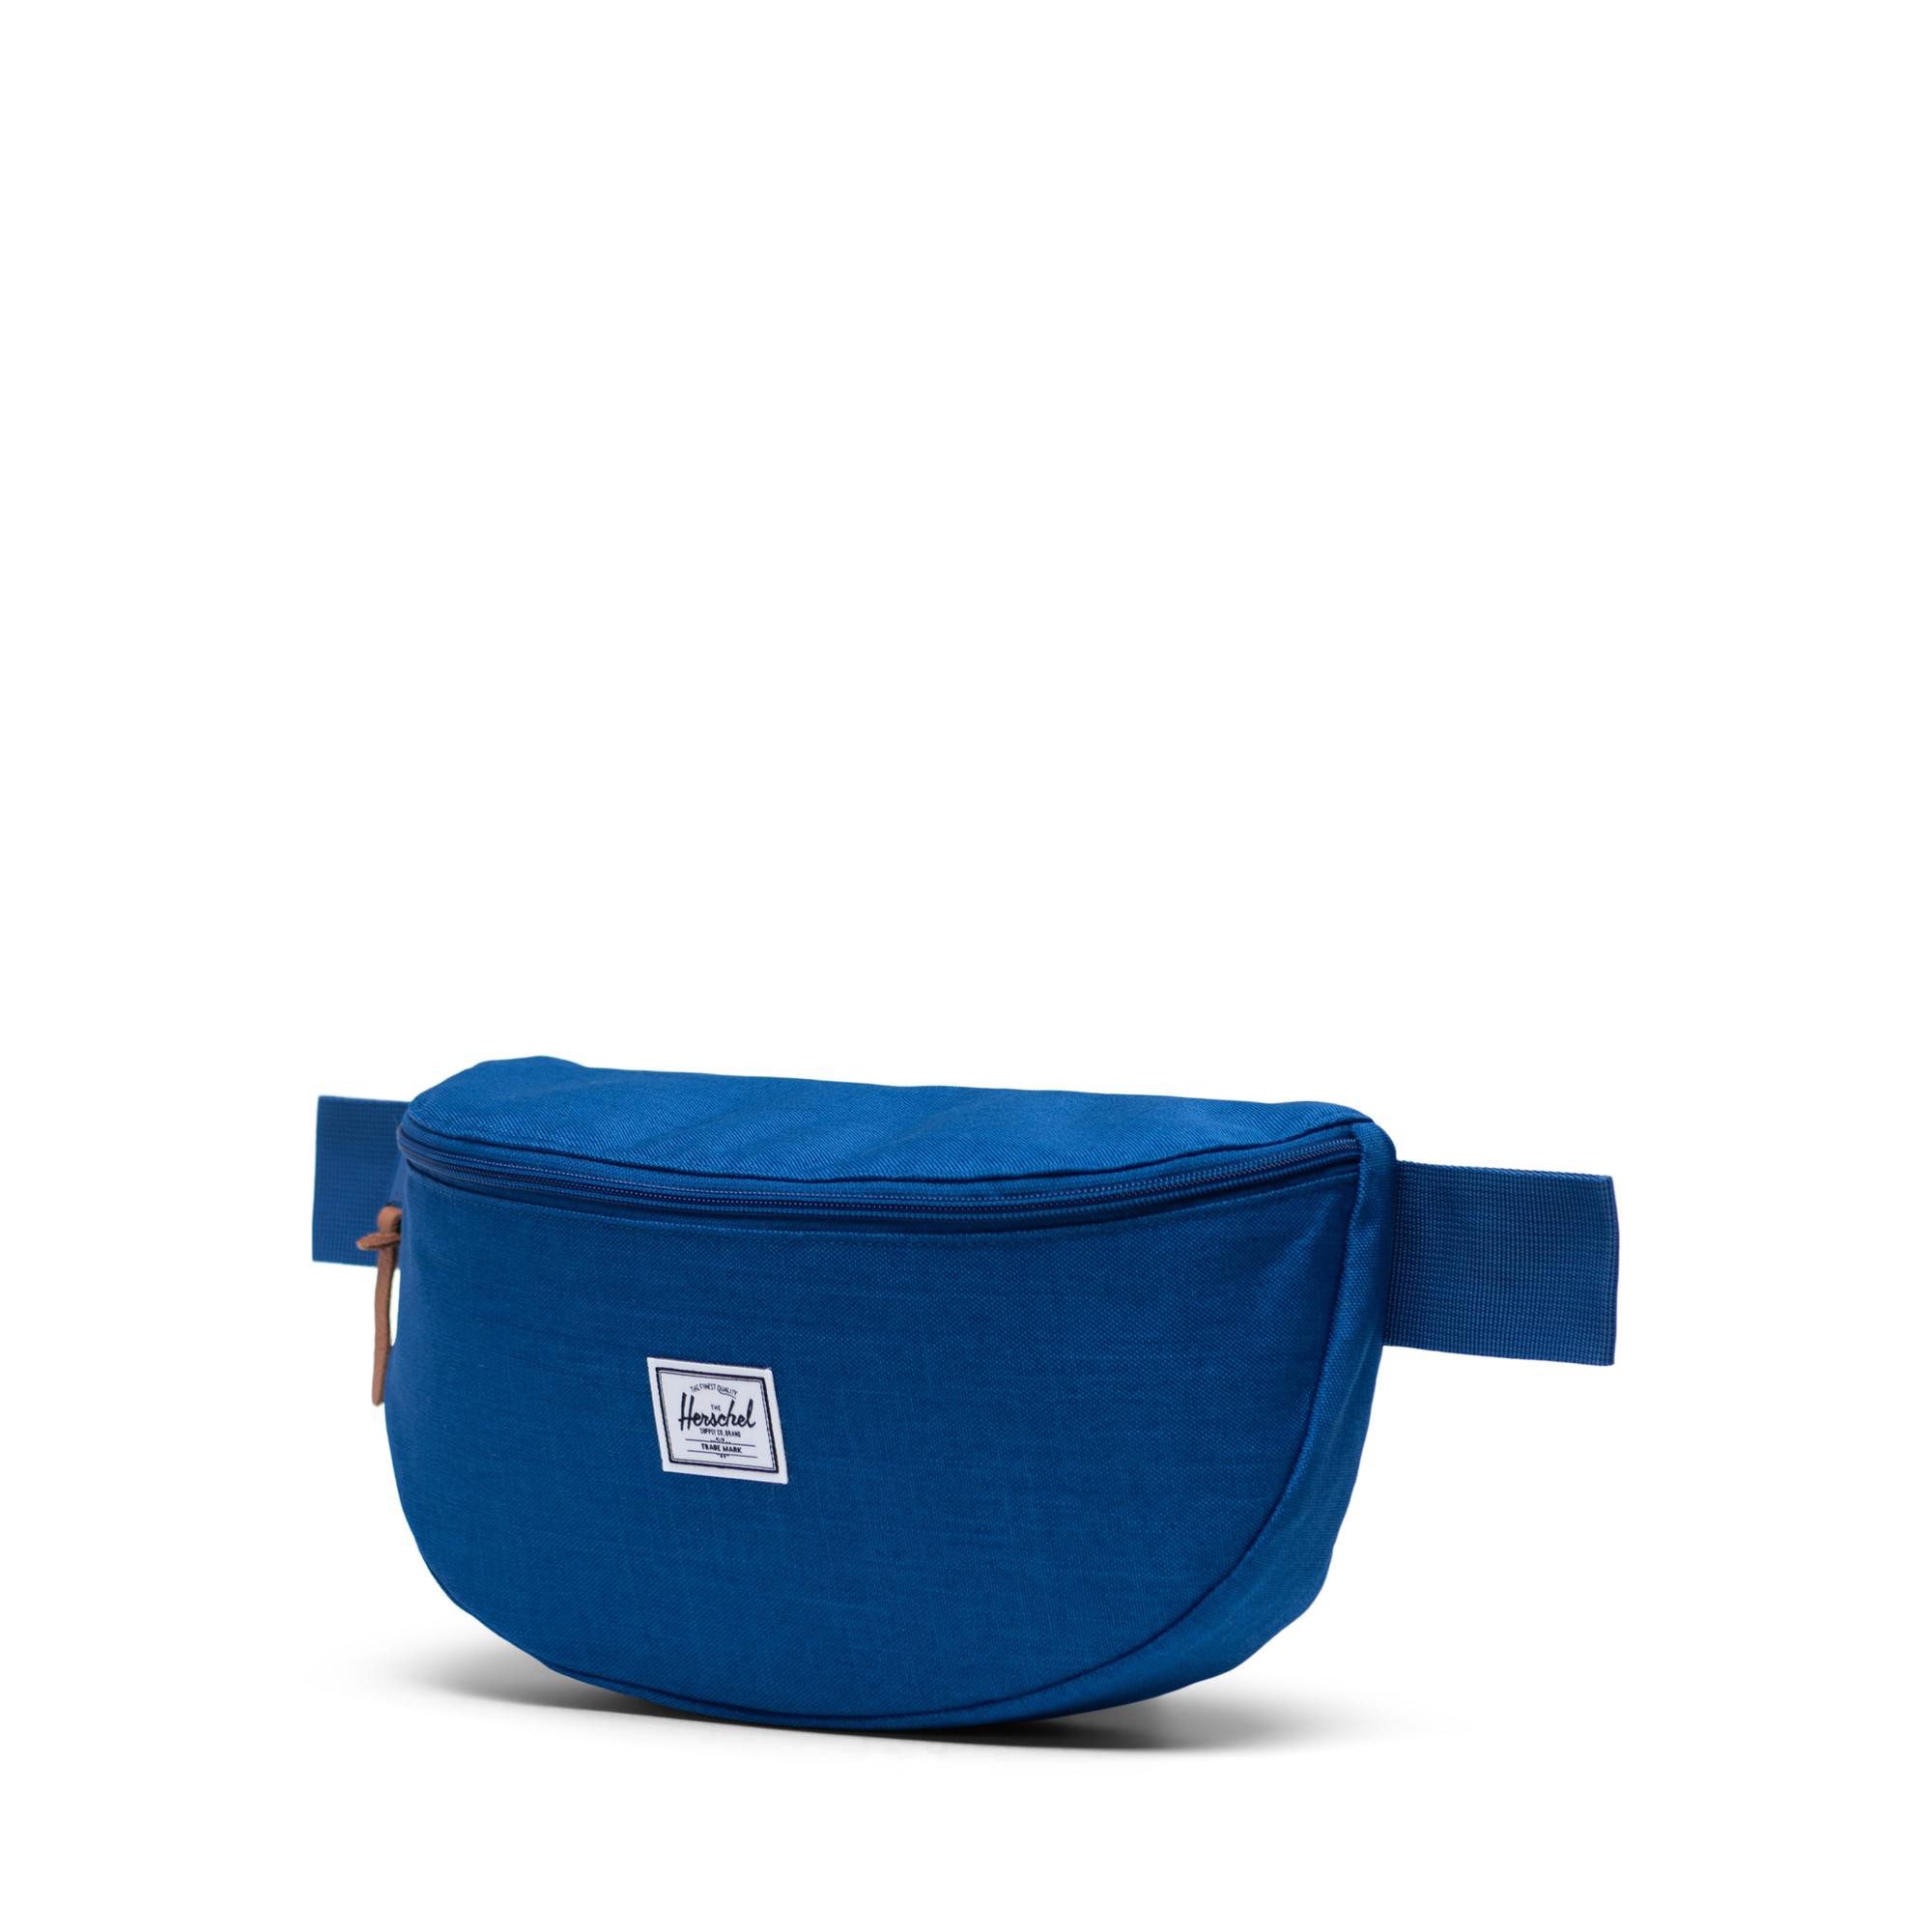 Herschel Sixteen Hip Pack - Mona Blue Crosshatch